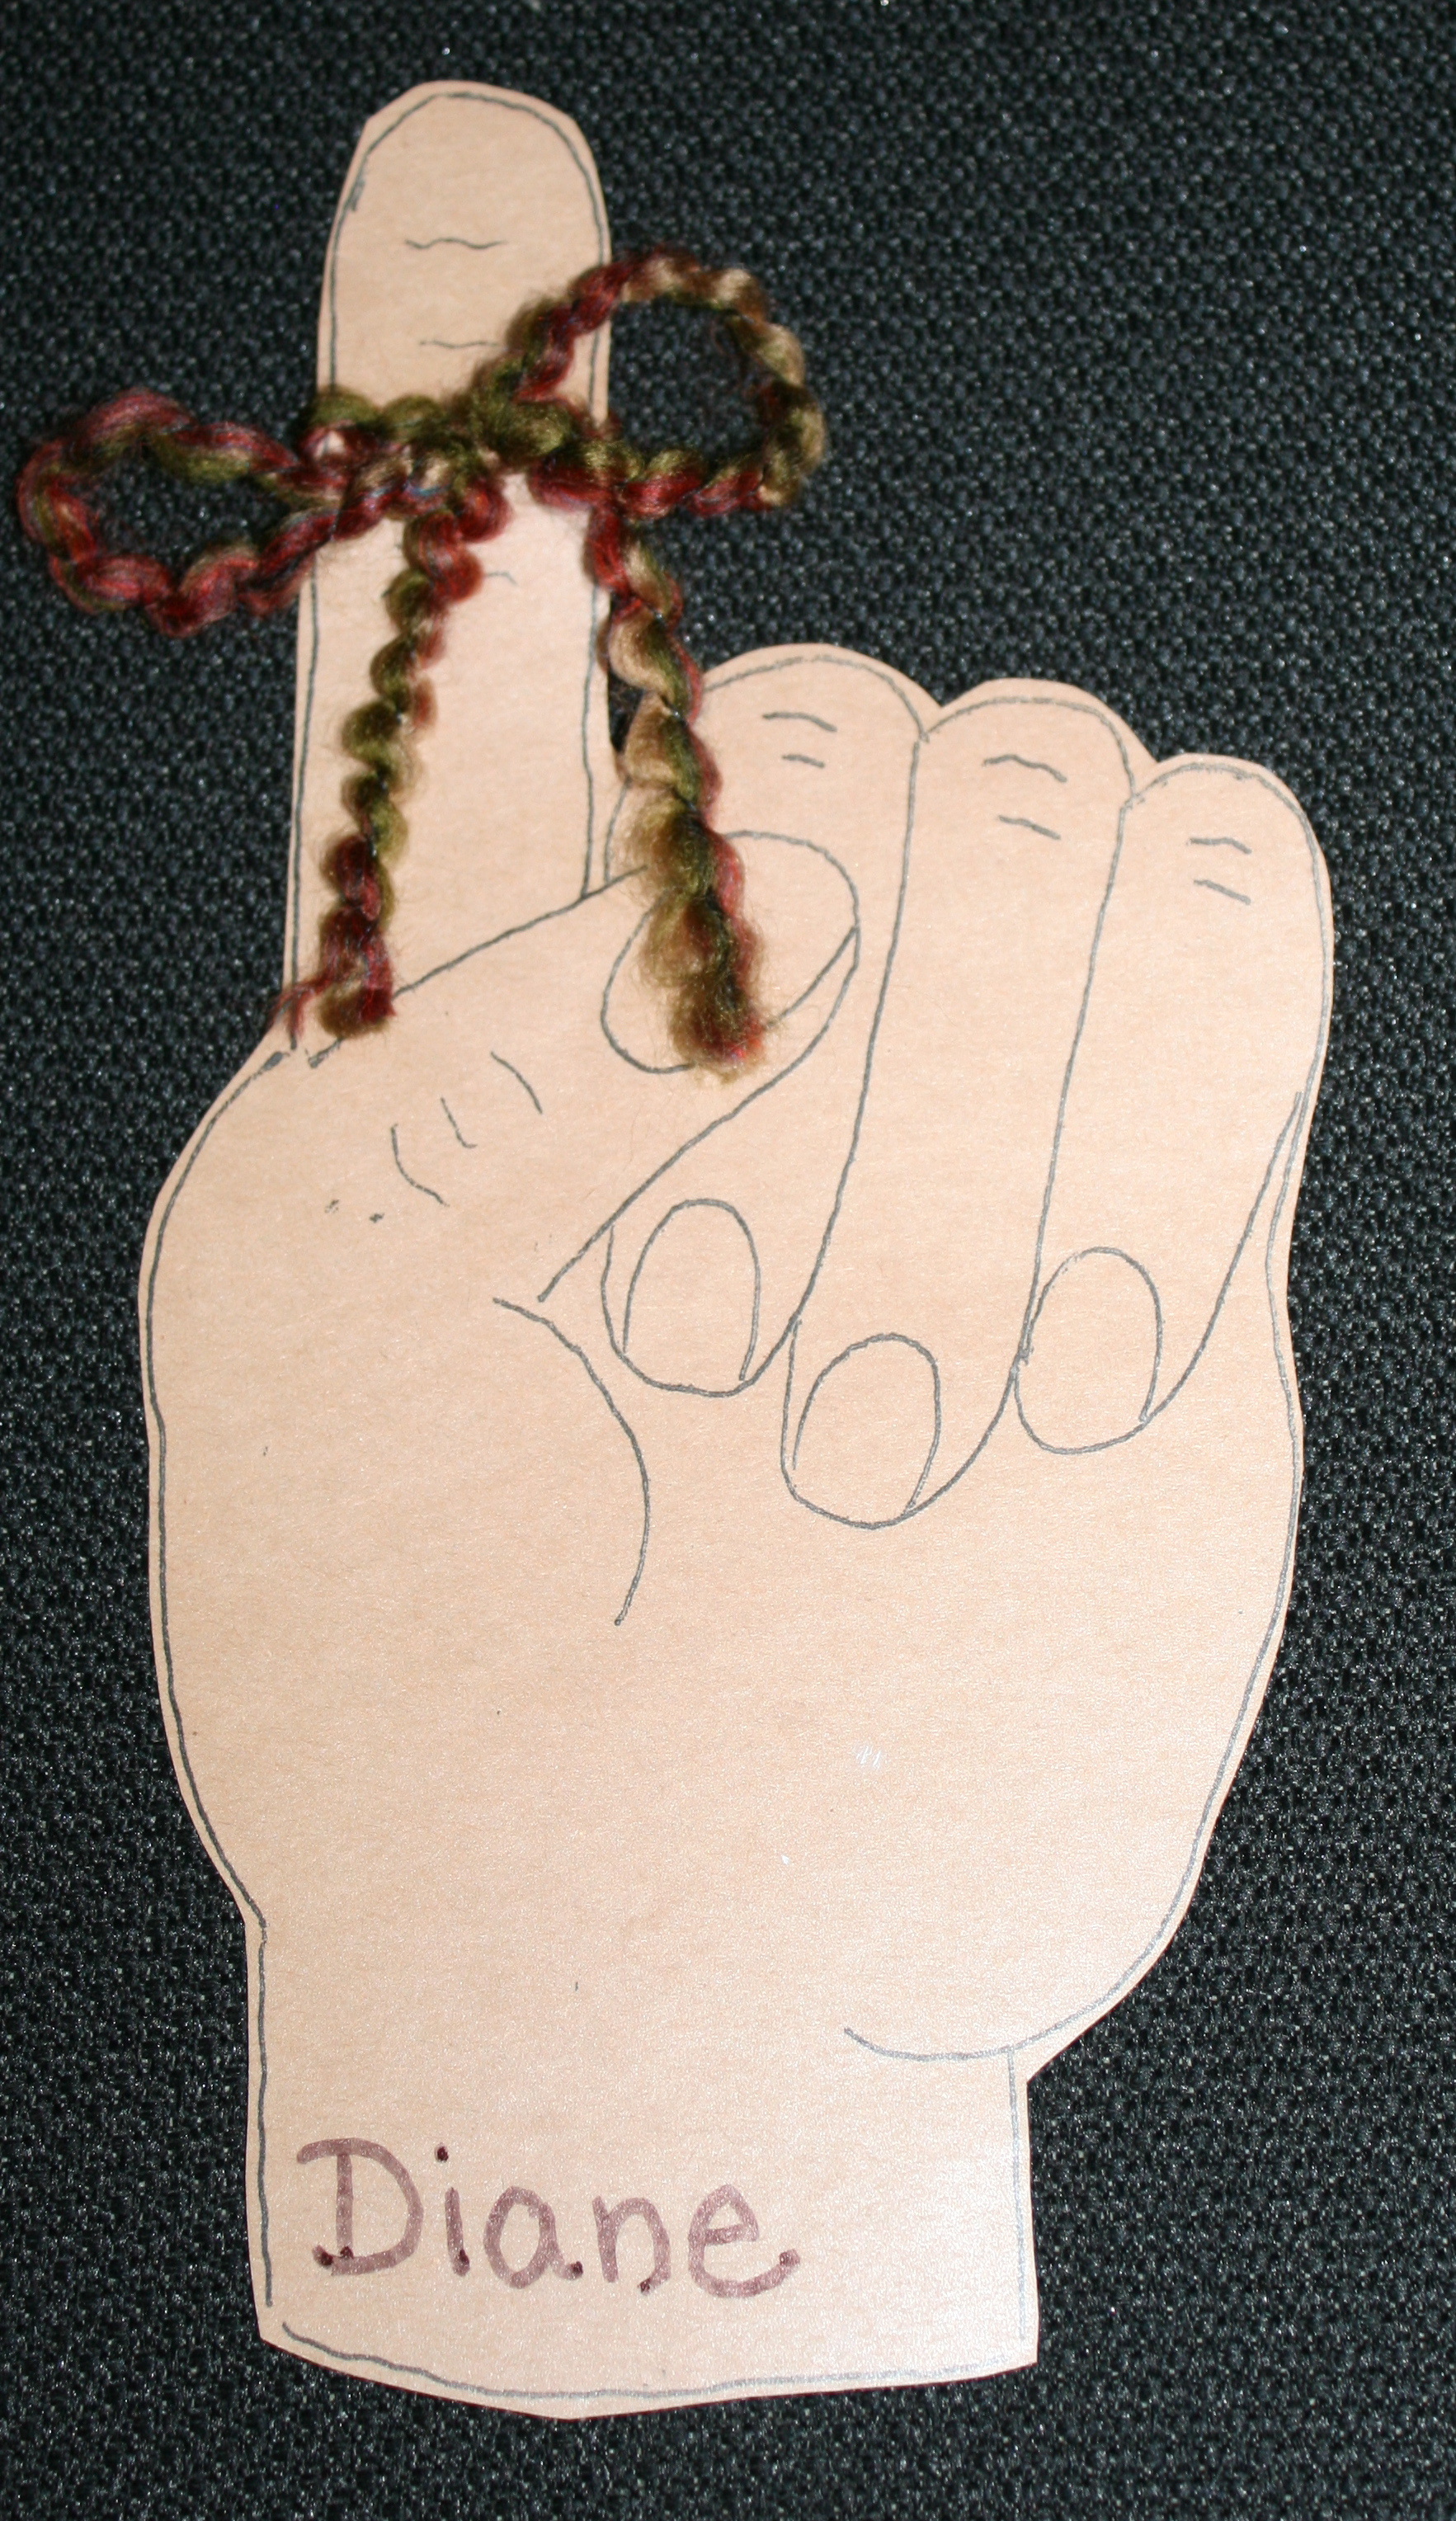 back to school ideas, tie a string on your finger to remember art activity